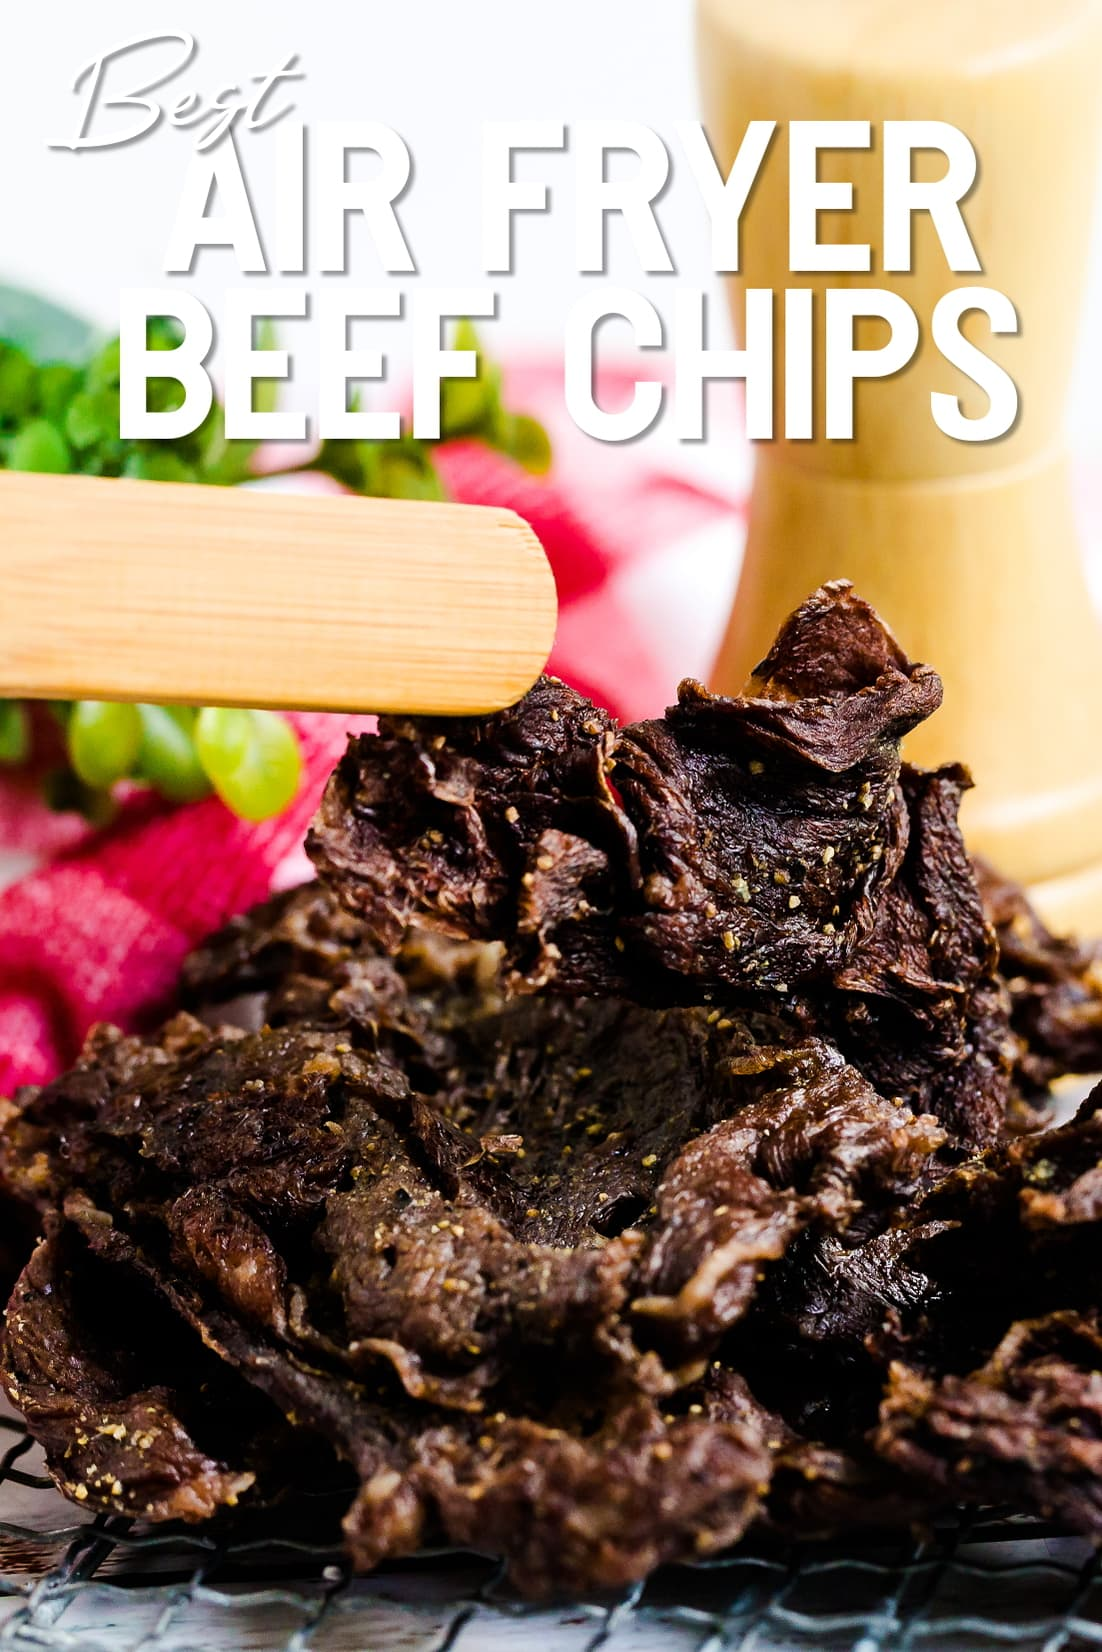 Air Fried Beef Chips being picked up with wooden tongs